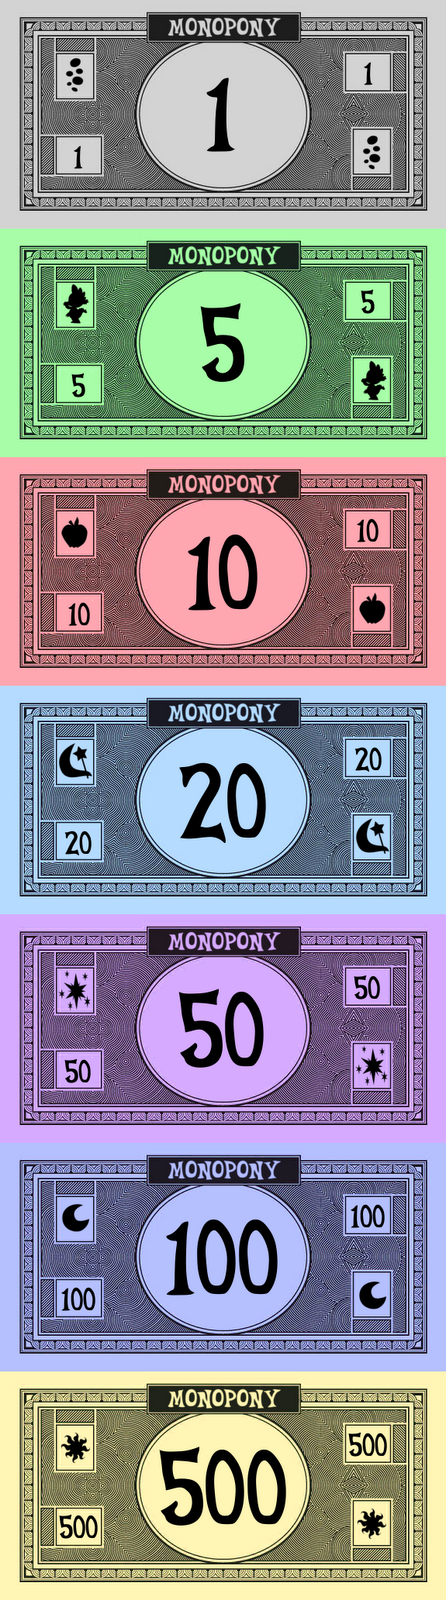 Monopoly Money Printable Monopoly money printable.